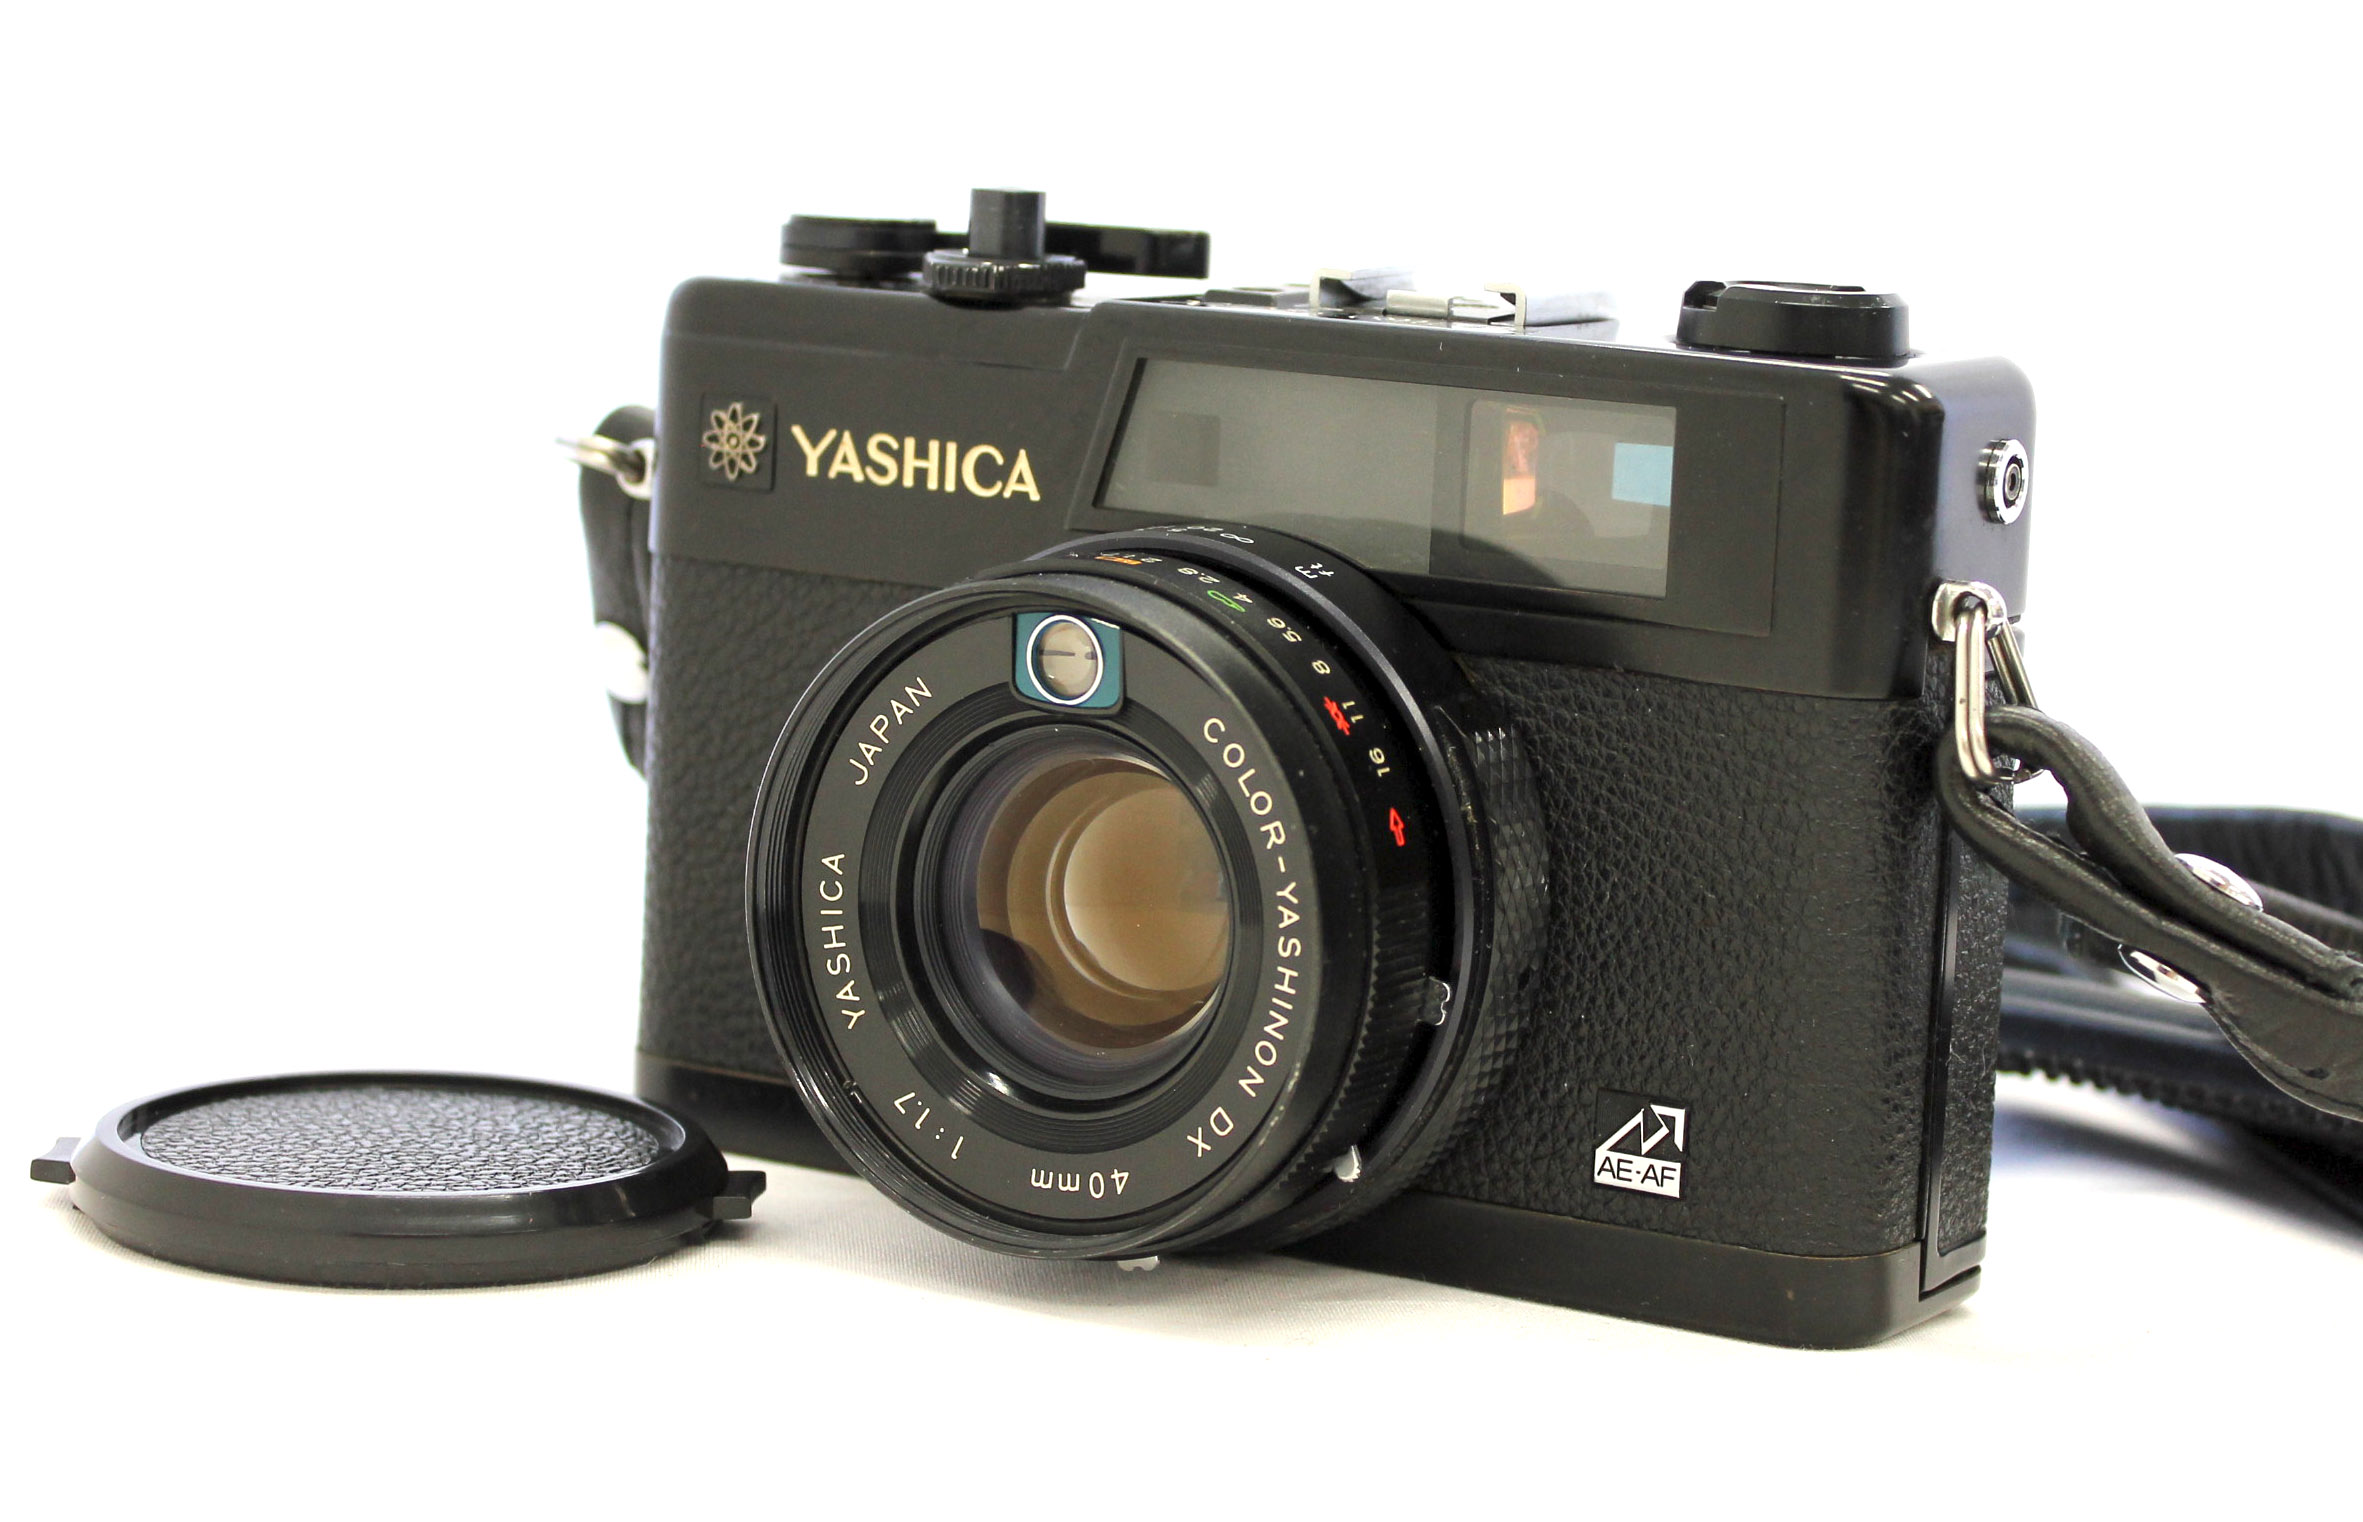 Japan Used Camera Shop | [Excellent+++++] Yashica Electro 35 GX Rangefinder Camera Black w/40mm F/1.7 Lens from Japan